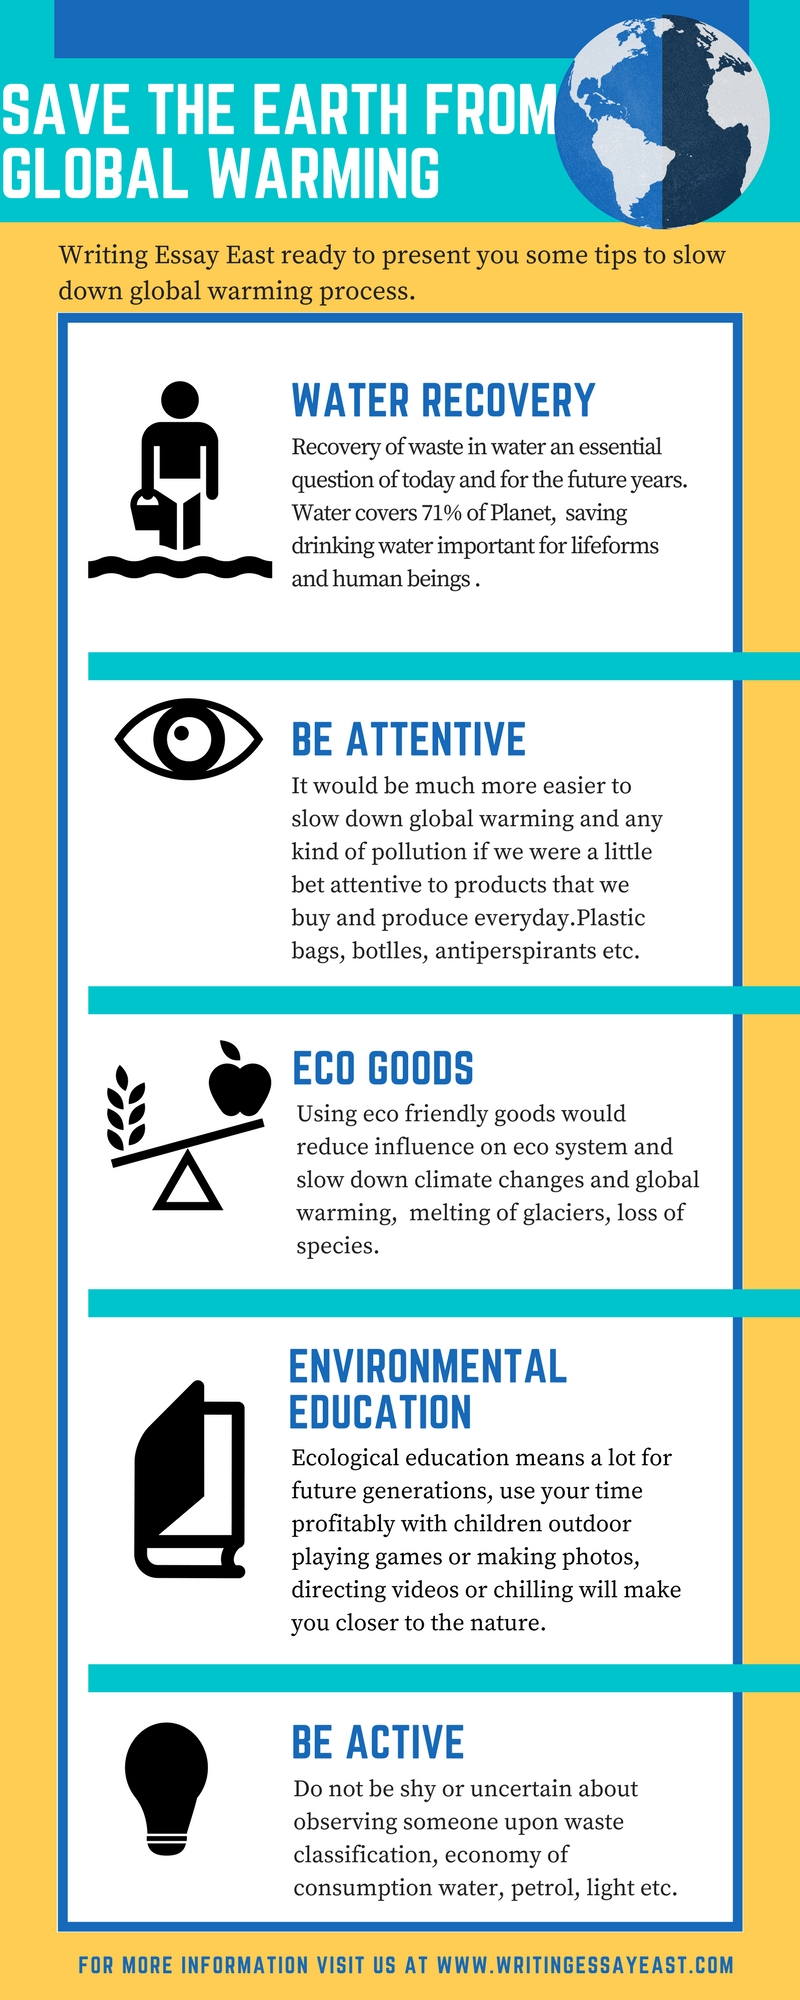 Controversial Essay Topics For Research Paper  Warming And Climate Changes Can Be Explained With Social Unrest Of  Changes That People Provoked Writing Essays On Global Changes Will  Deffinitely  Business Essay Format also Simple Essays In English Educational Infographic On Global Warming Living A Healthy Lifestyle Essay